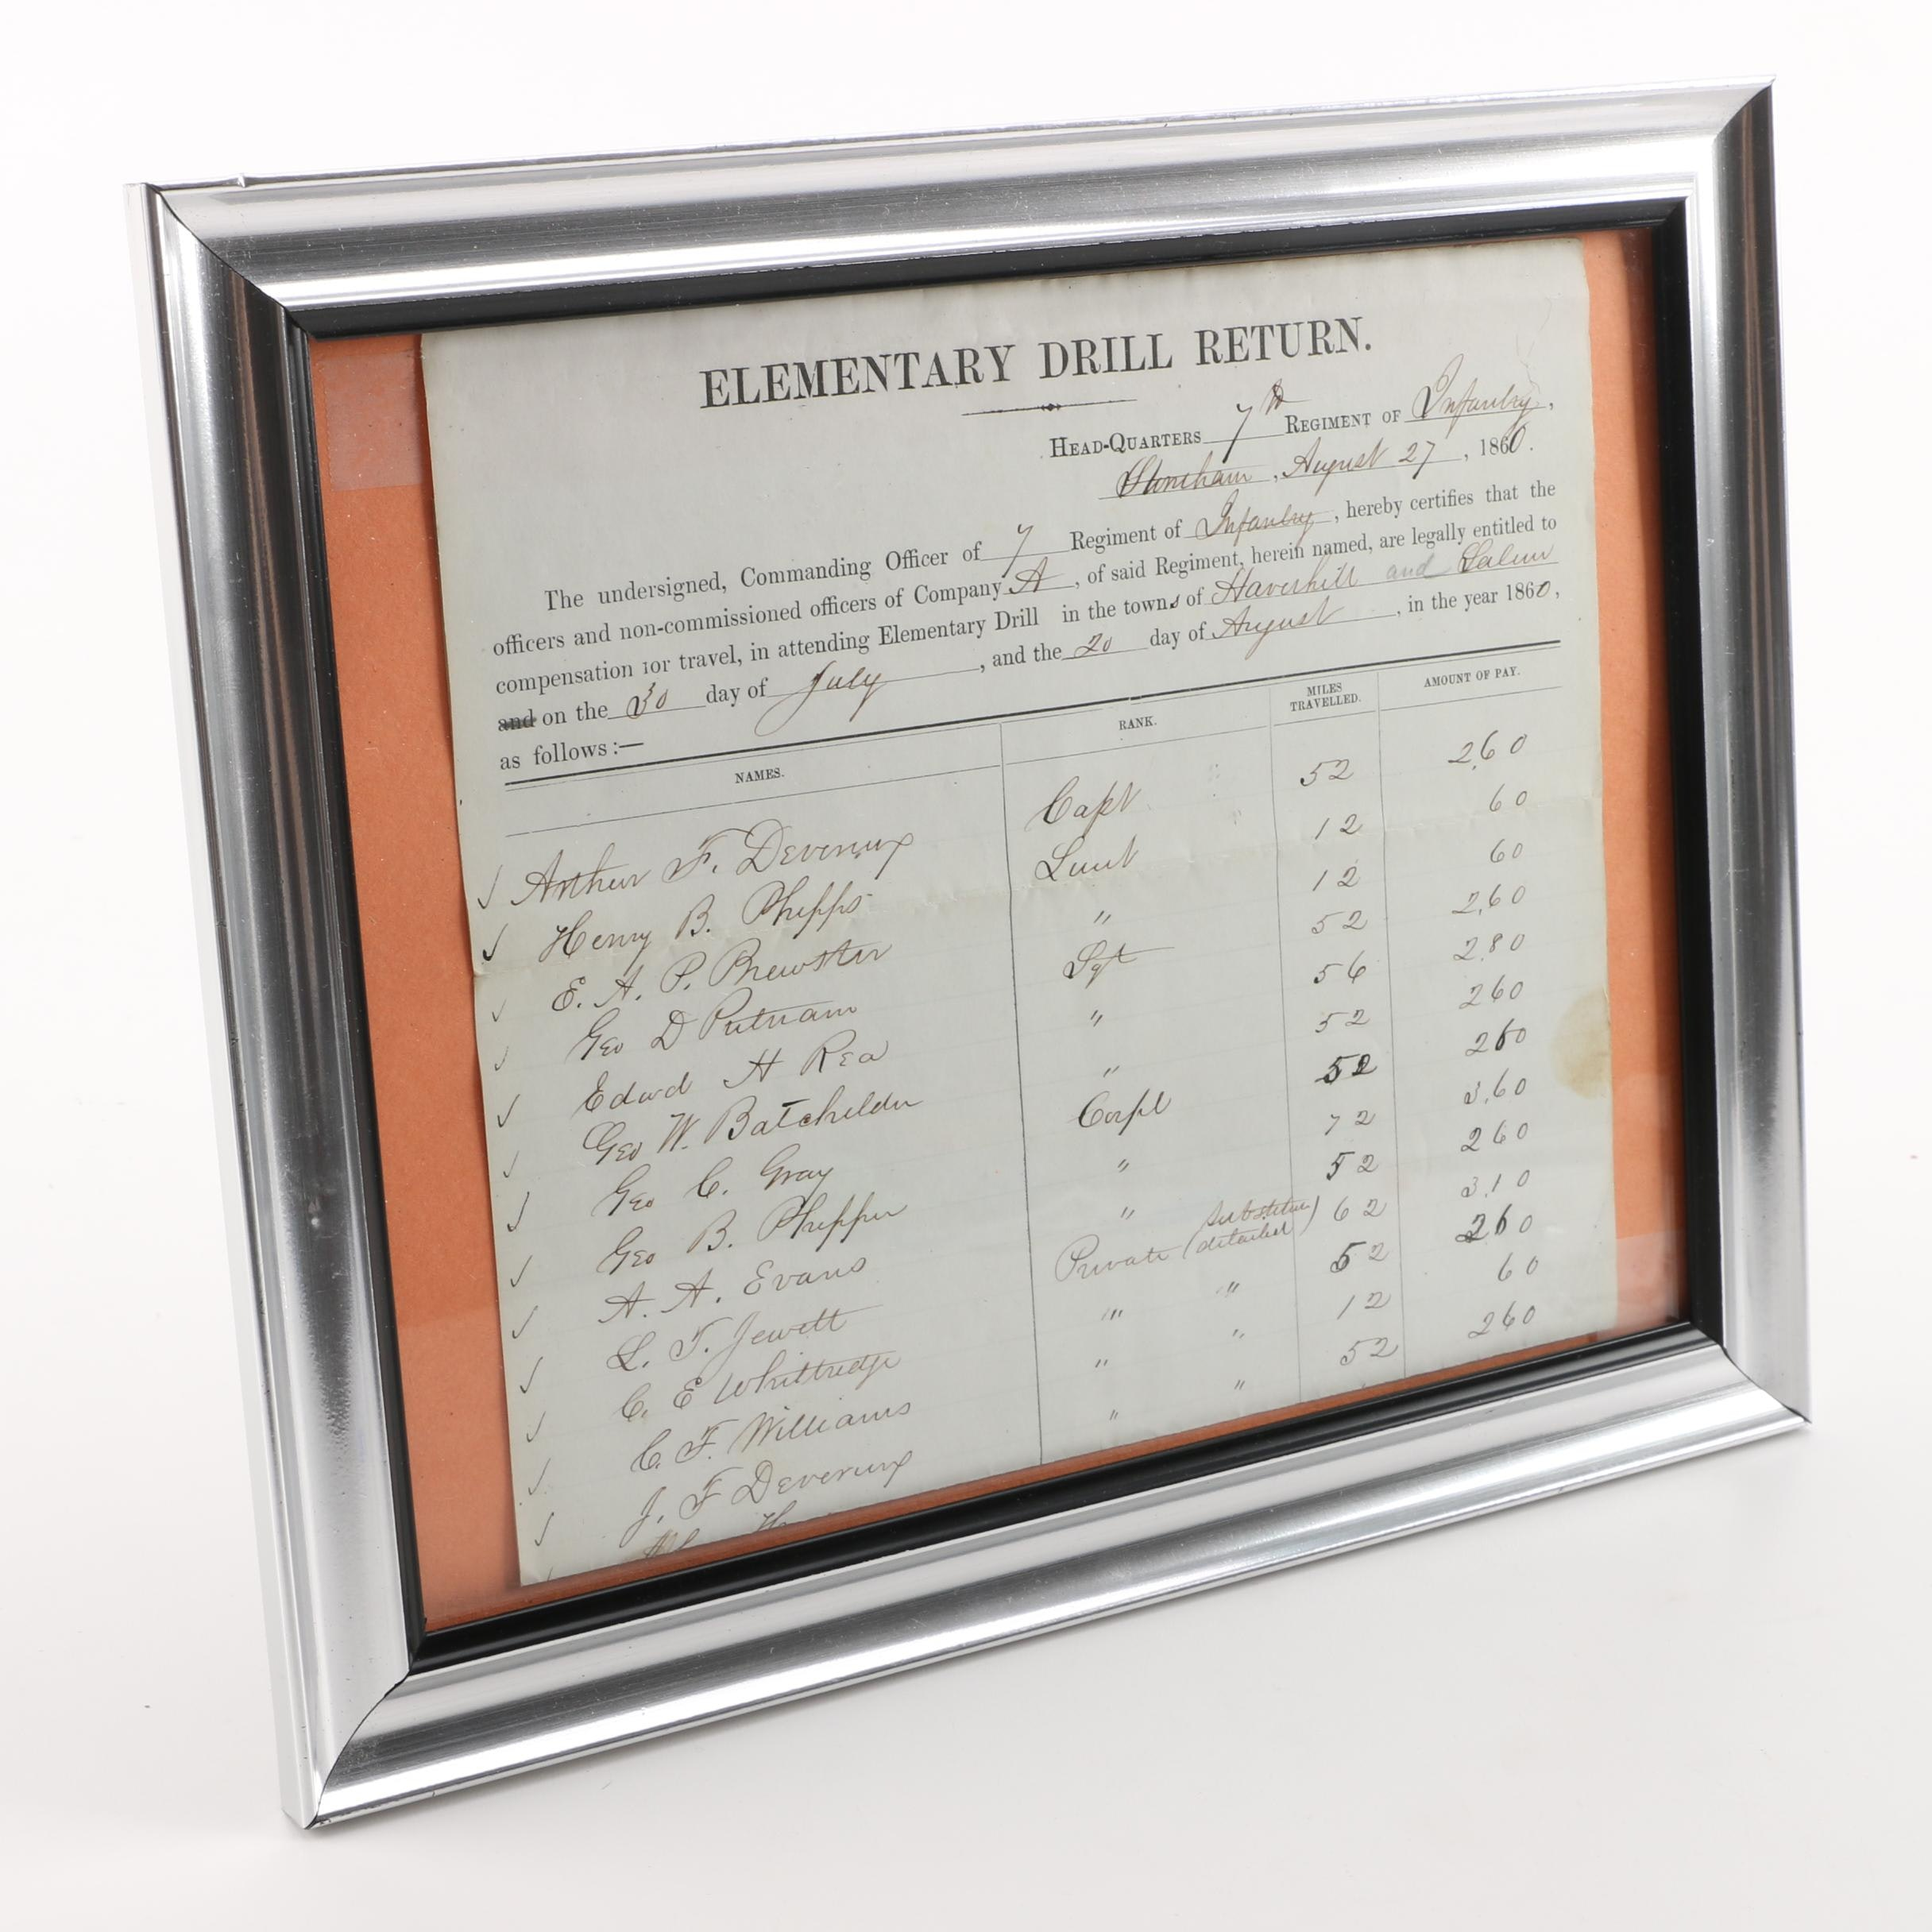 1860 Elementary Drill Return In Silver Tone Frame